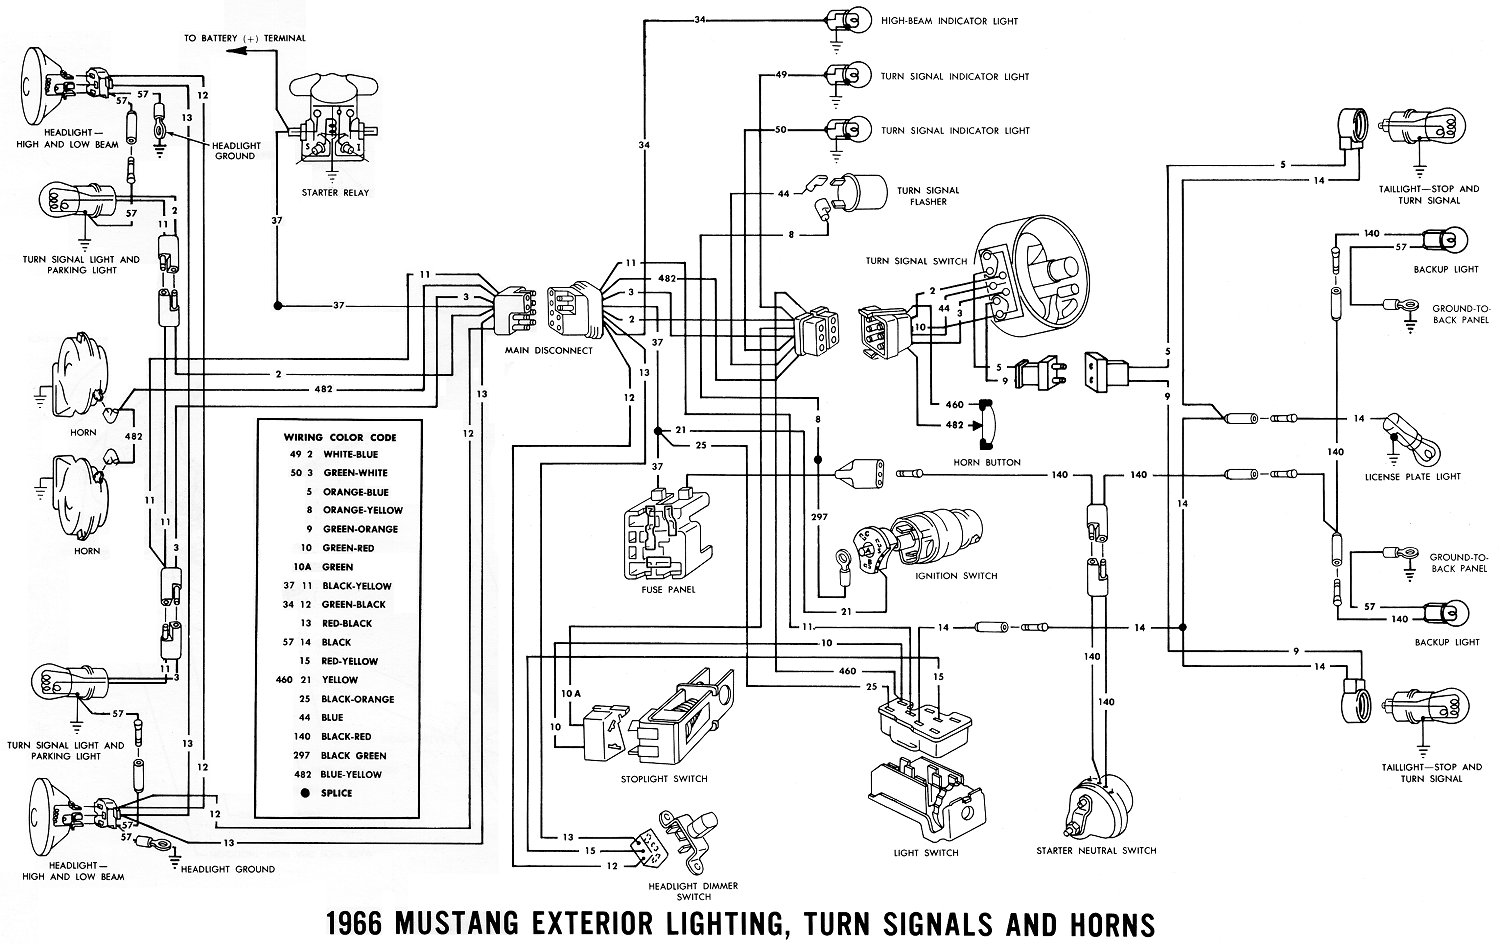 1966 Mustang Exterior Lighting Diagram pictures mustang documents 1968 mustang neutral safety switch wiring diagram at honlapkeszites.co